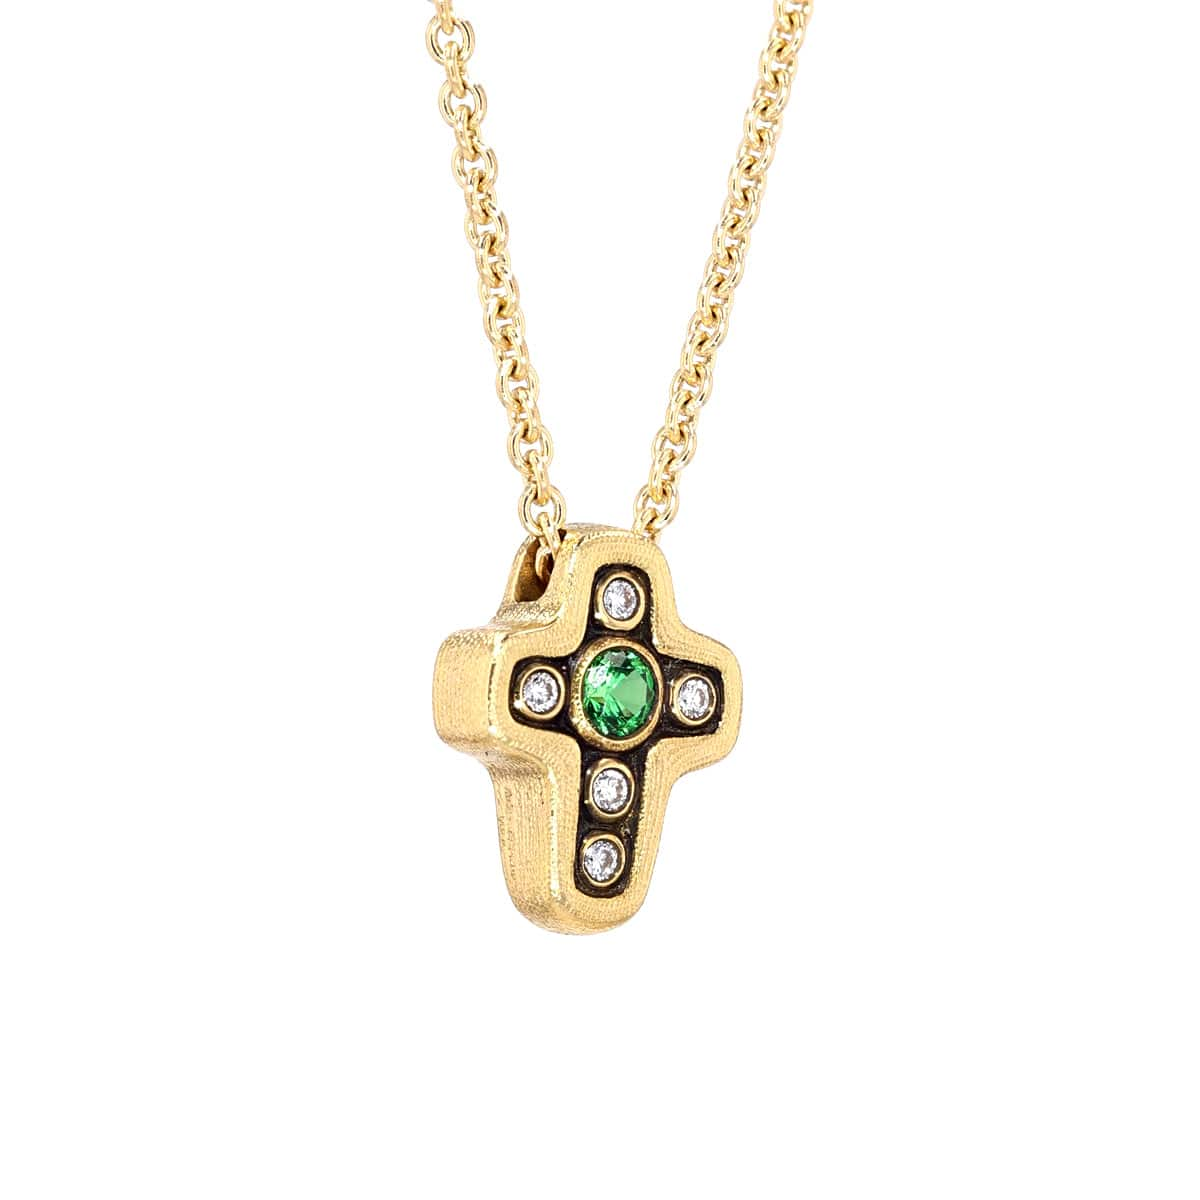 18K Cross Tsavorite & Diamond Pendant - M-1815-Alex Sepkus-Renee Taylor Gallery